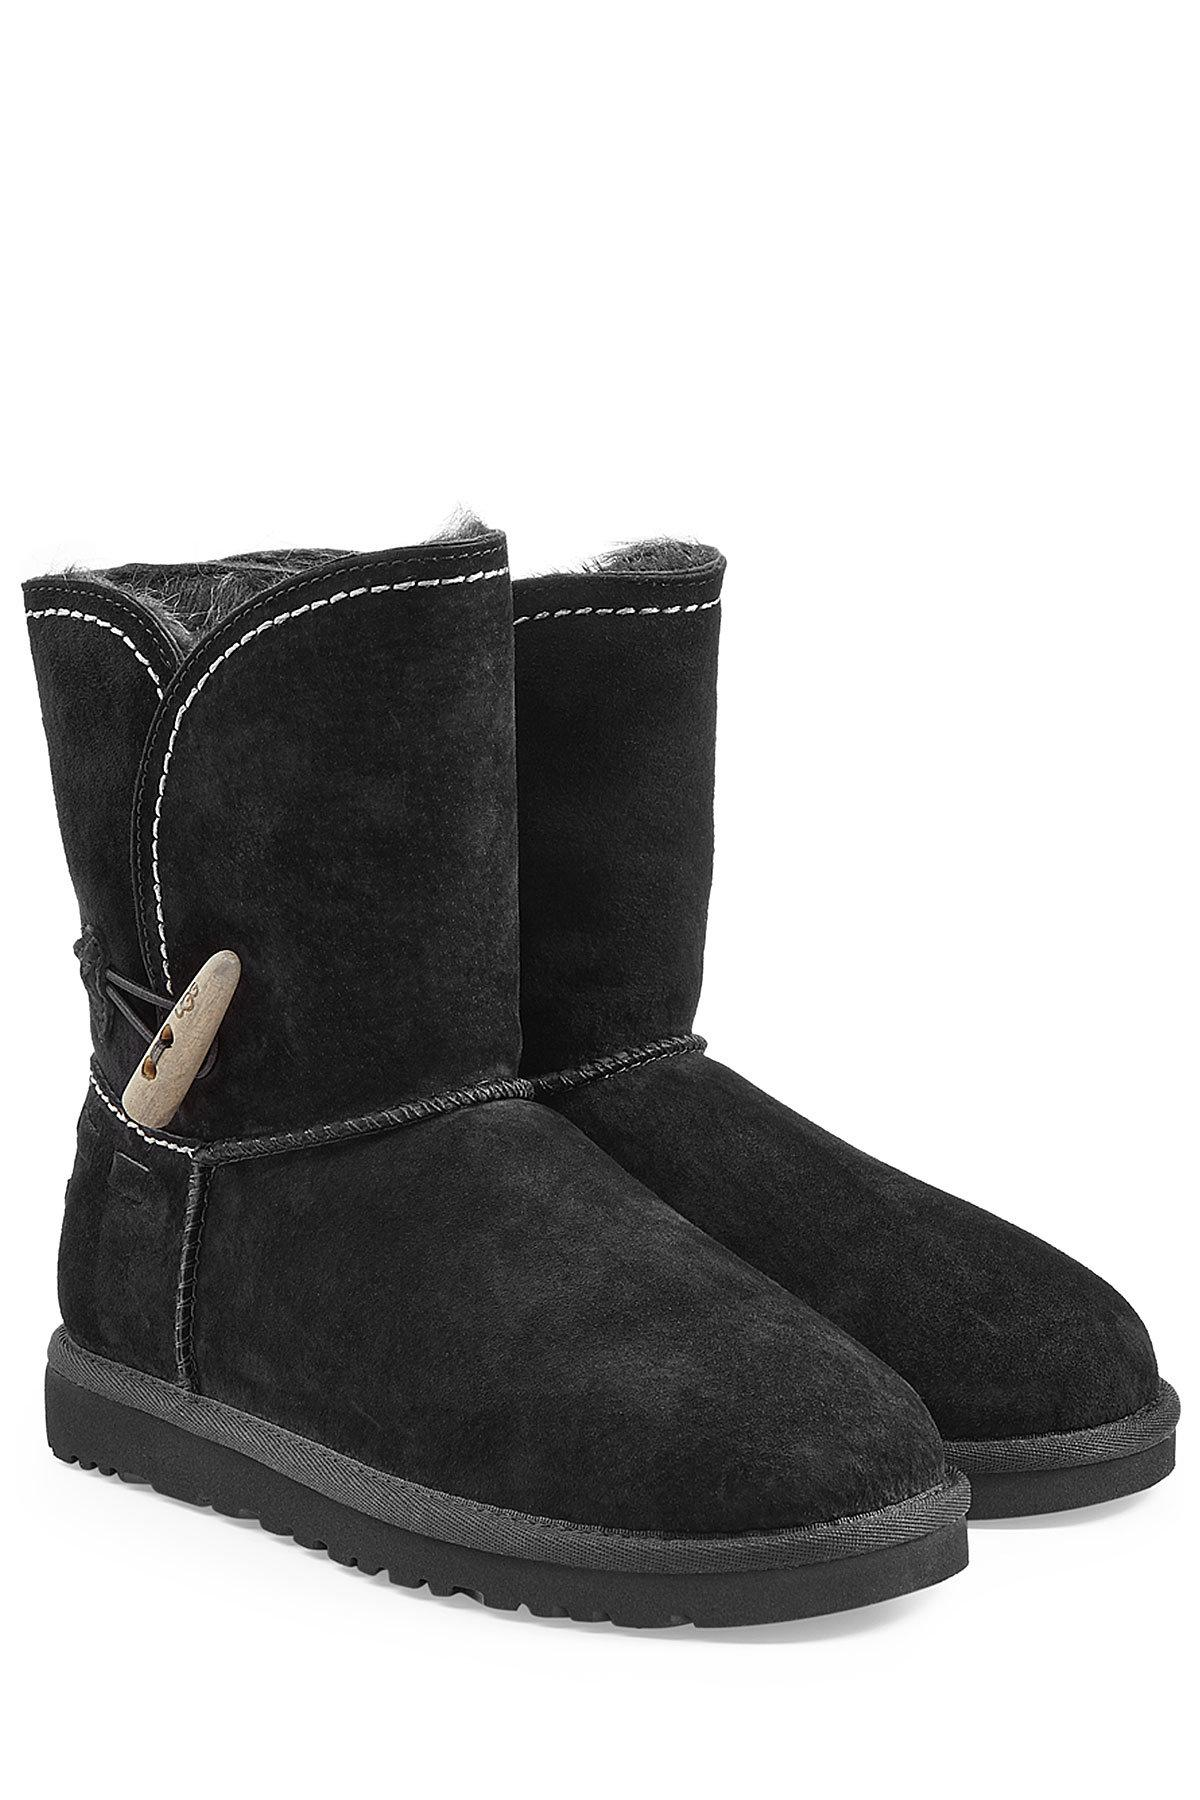 4ab842ce3b28e8 Lyst - Ugg Meadow Sheepskin Boots in Black